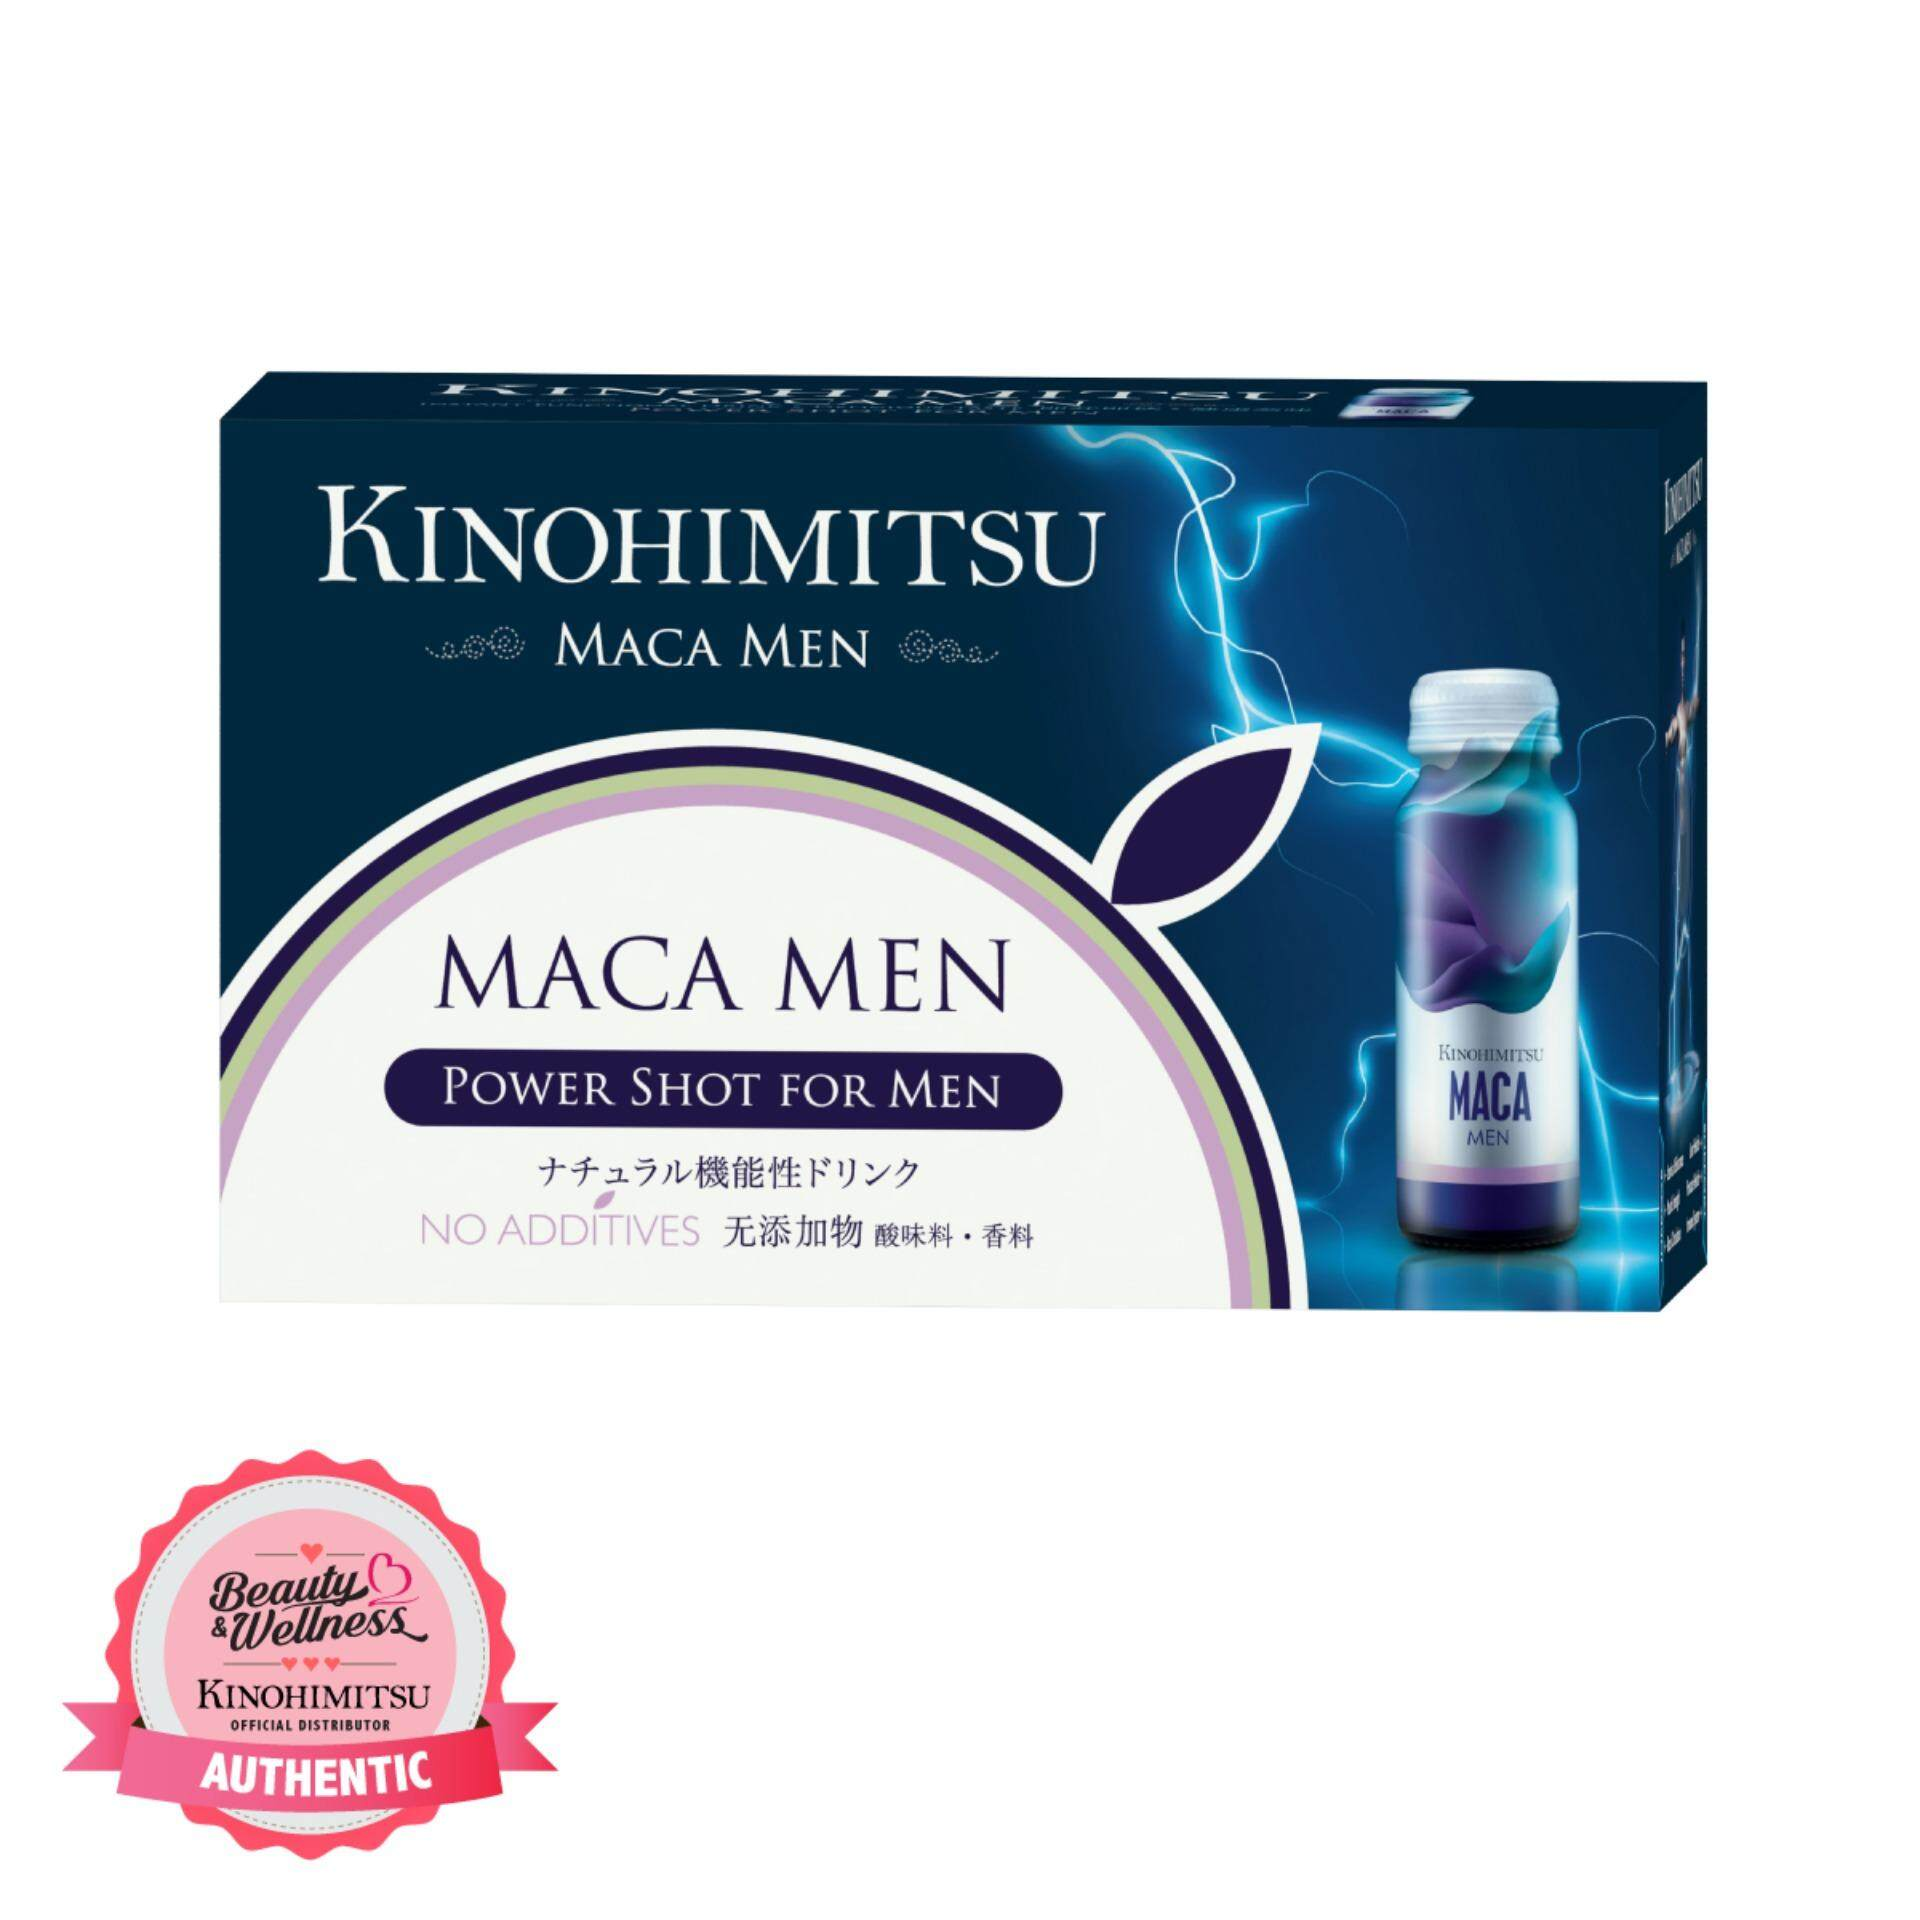 Kinohimitsu Health Beauty Products For The Best Price In Malaysia Jpan Drink Collagen 2500mg 6 Botol Macamen 10s